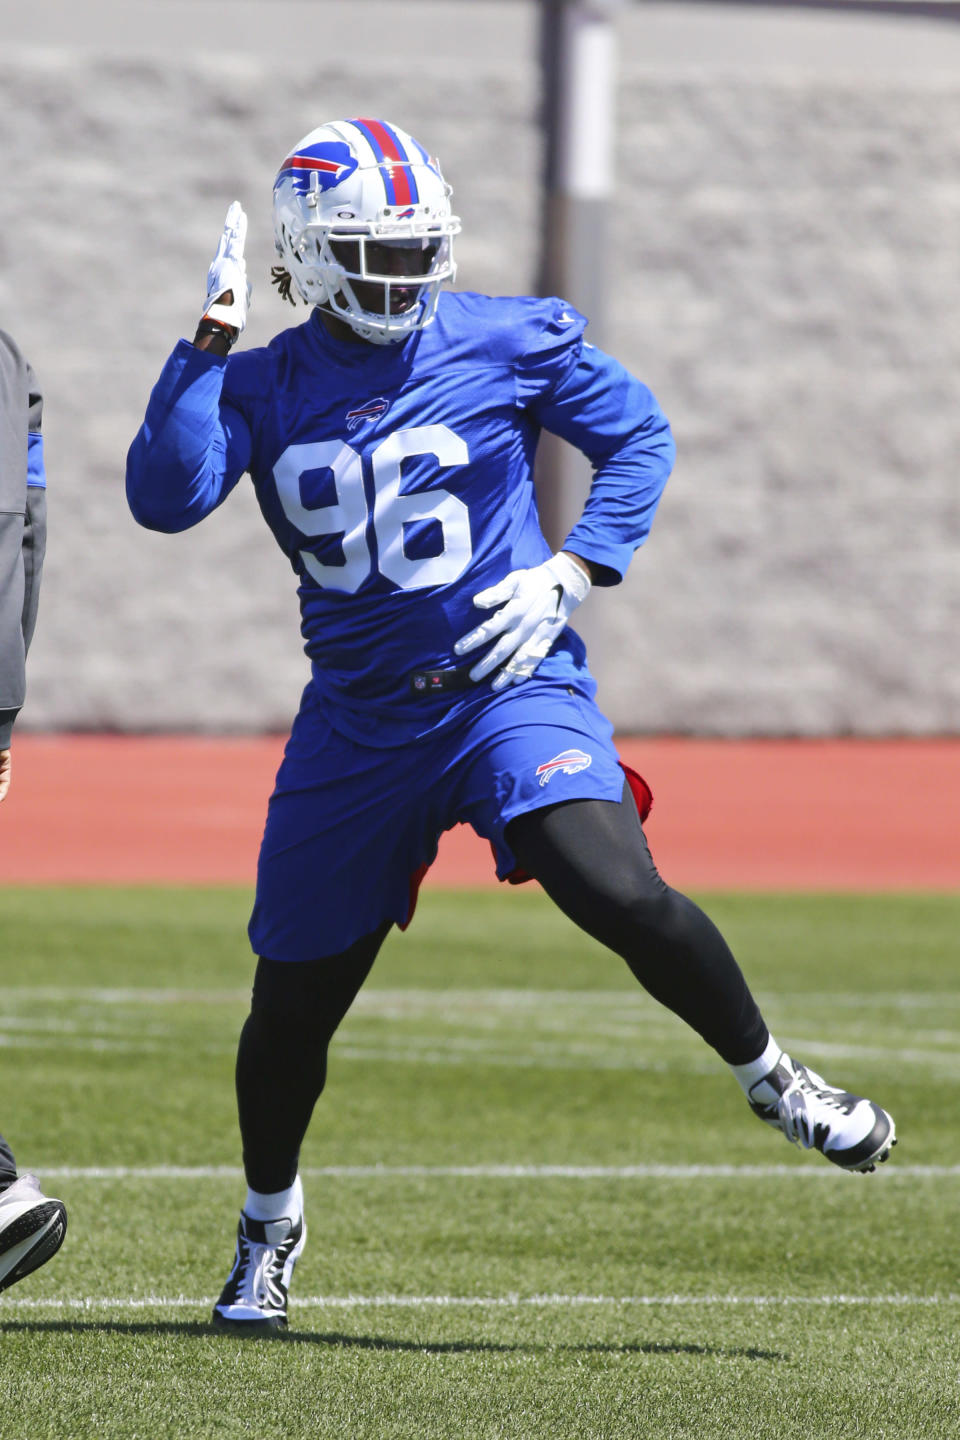 Buffalo Bills defensive end Boogie Basham (96) runs a drill during an NFL football rookie minicamp in Orchard Park, N.Y., Friday, May 14, 2021. (AP Photo/Jeffrey T. Barnes)